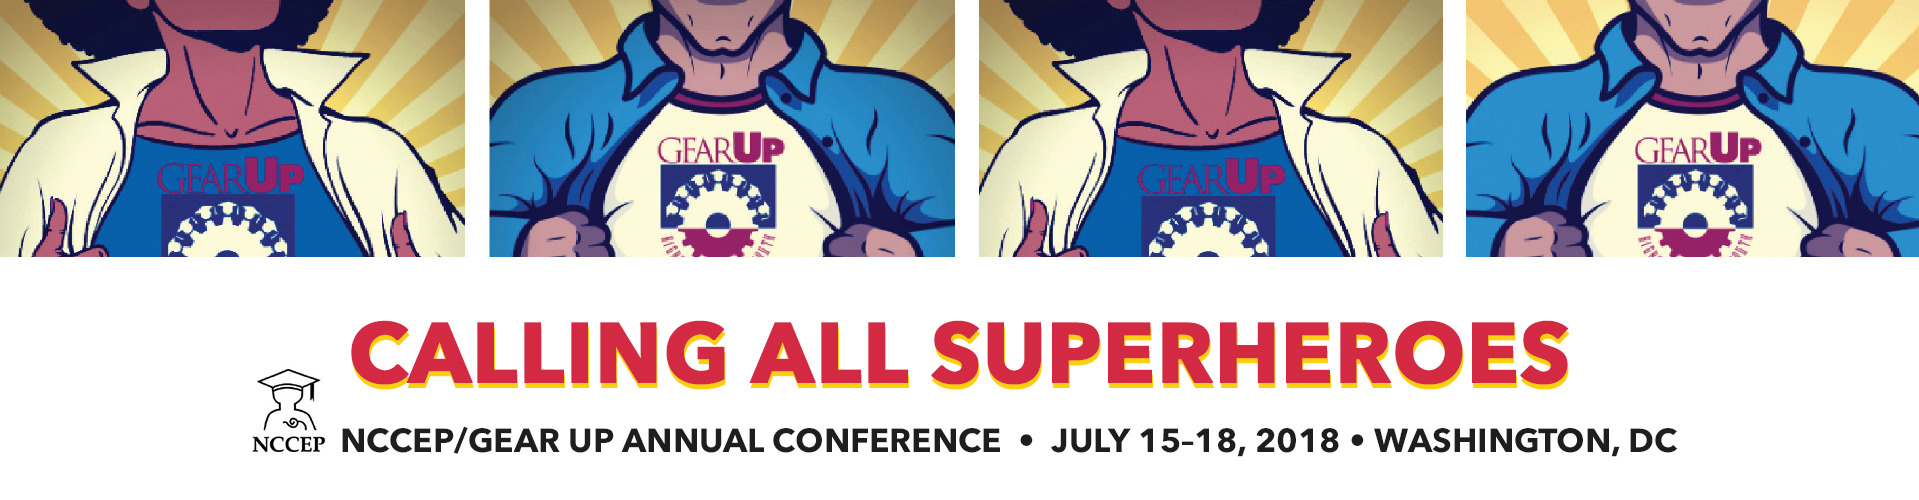 2018 NCCEP/GEAR UP Annual Conference - Calling all Superheroes